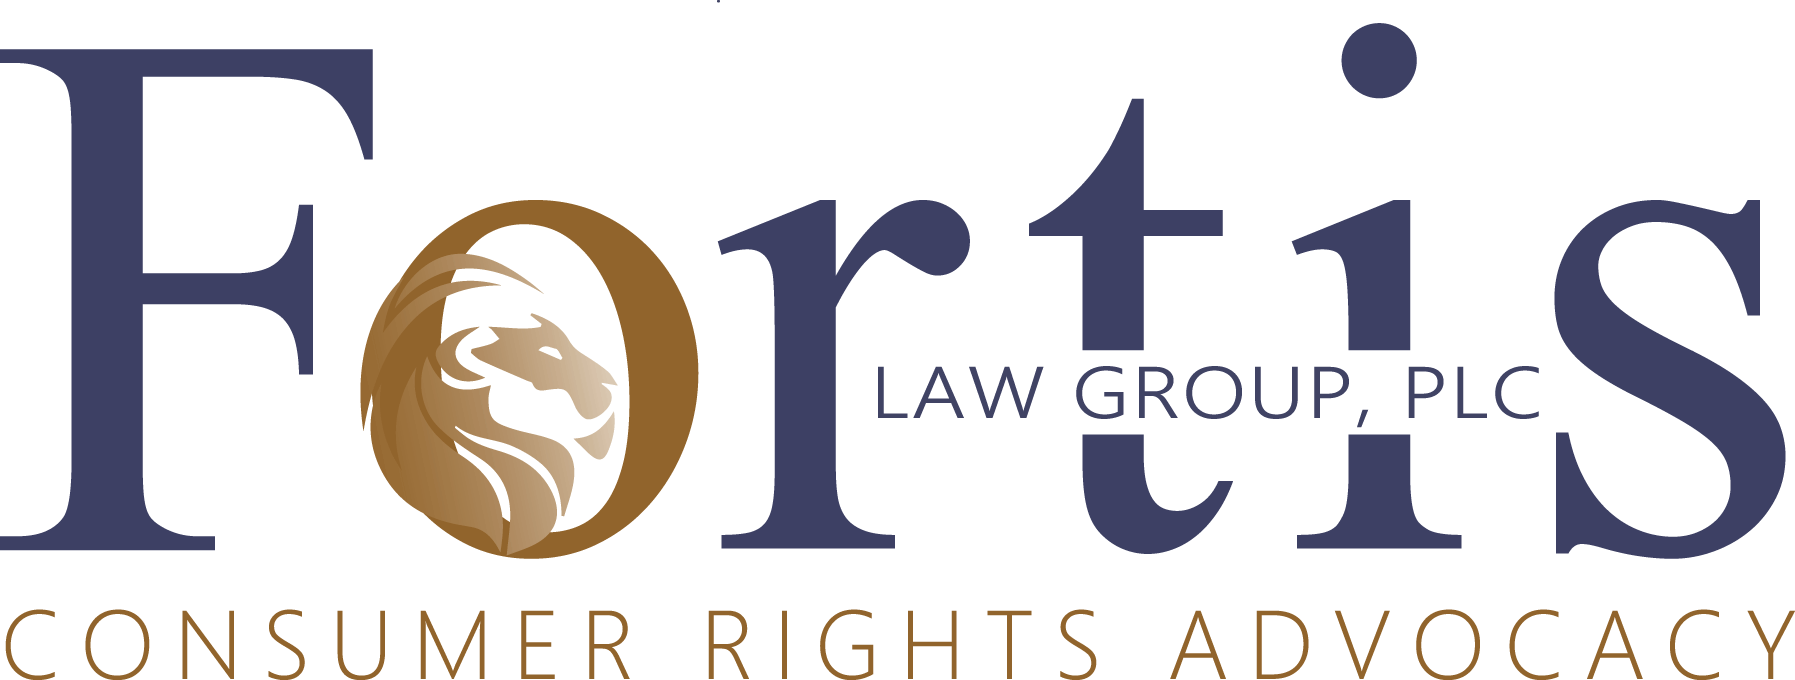 fortis consumer law group